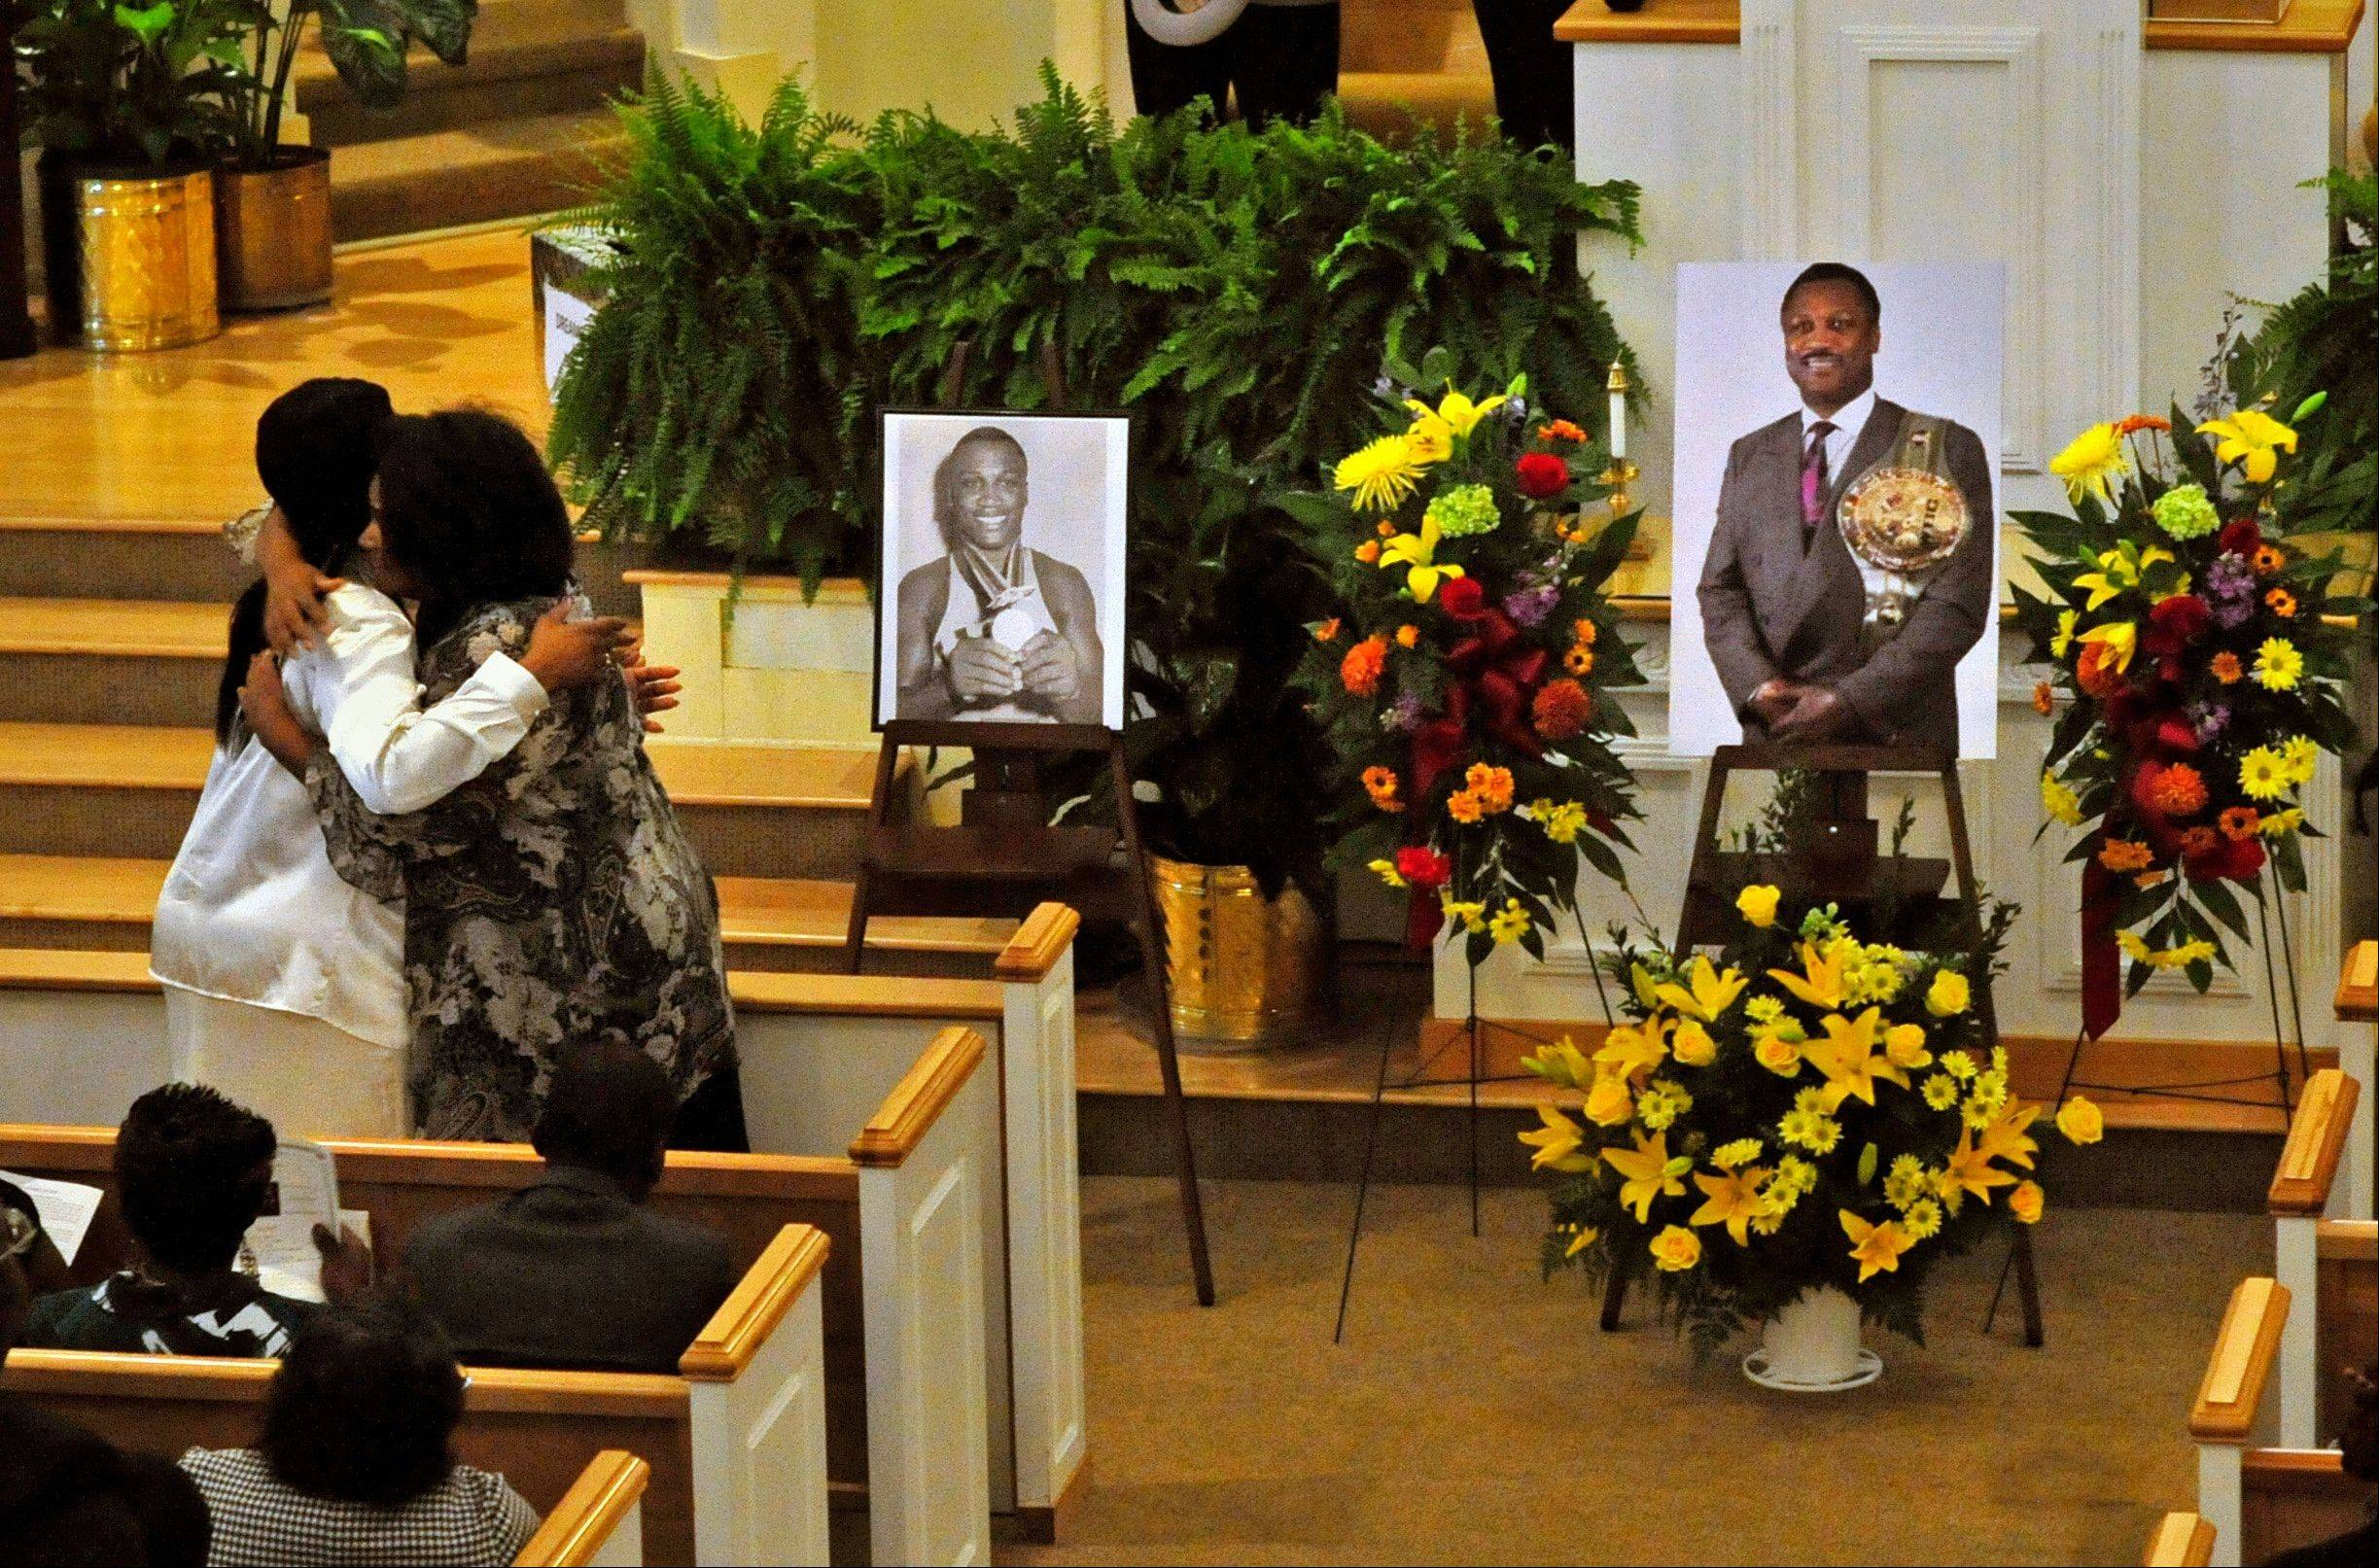 Joe Frazier's daughter Jacqui Frazier Lyde, left, and niece Dannette Frazier, right, hug Wednesday during a memorial service for the former heavyweight boxing champion at the Bethesda Christian Fellowship Temple in St. Helena Island, S.C. Frazier died earlier this month from liver cancer. He was 67.